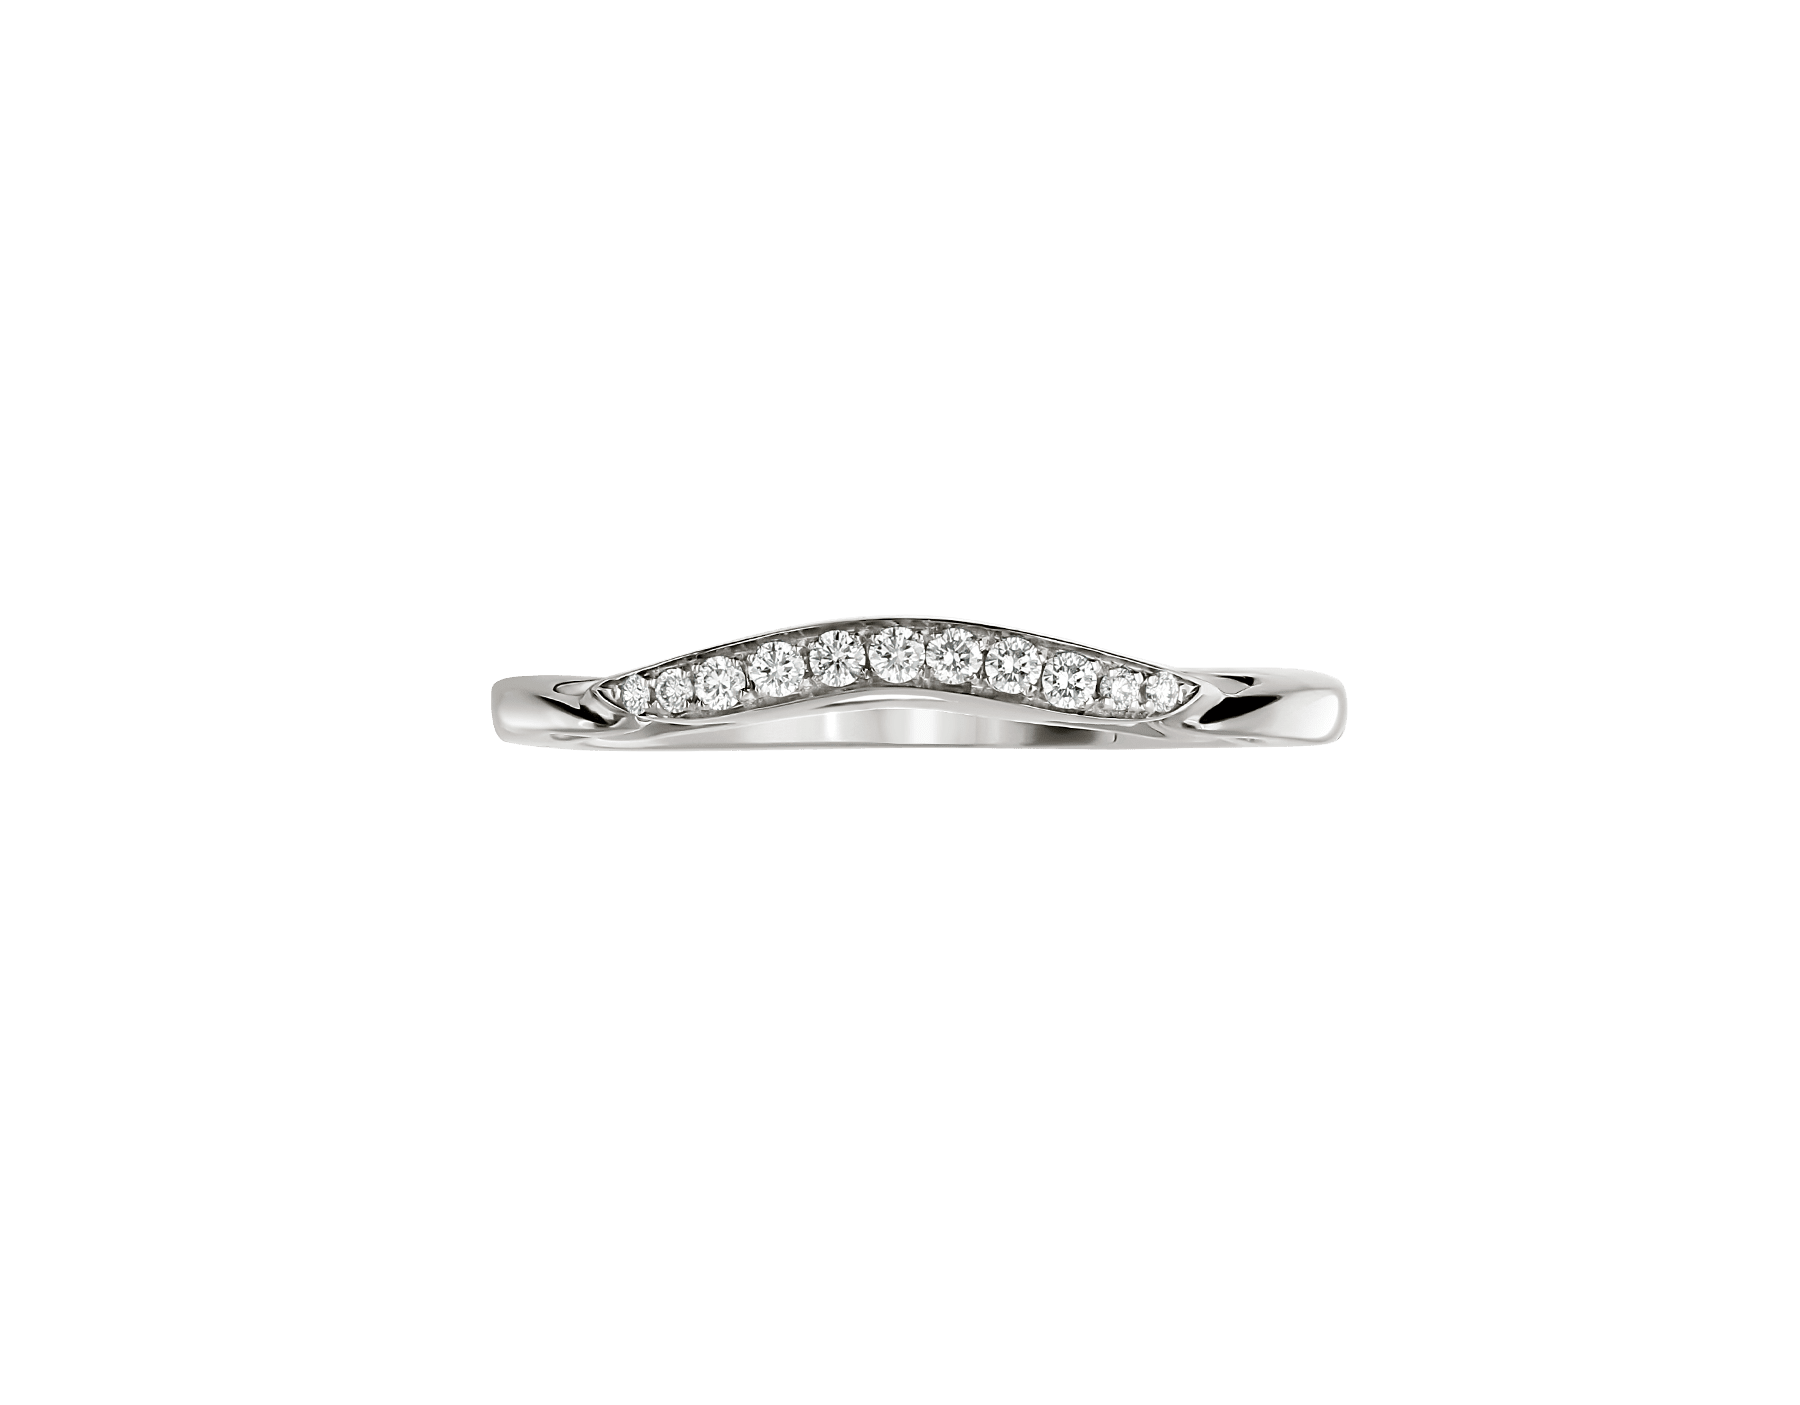 Incontro d'amore wedding band in platinum set with pavé diamonds (0.07 ct). AN858130 image 2